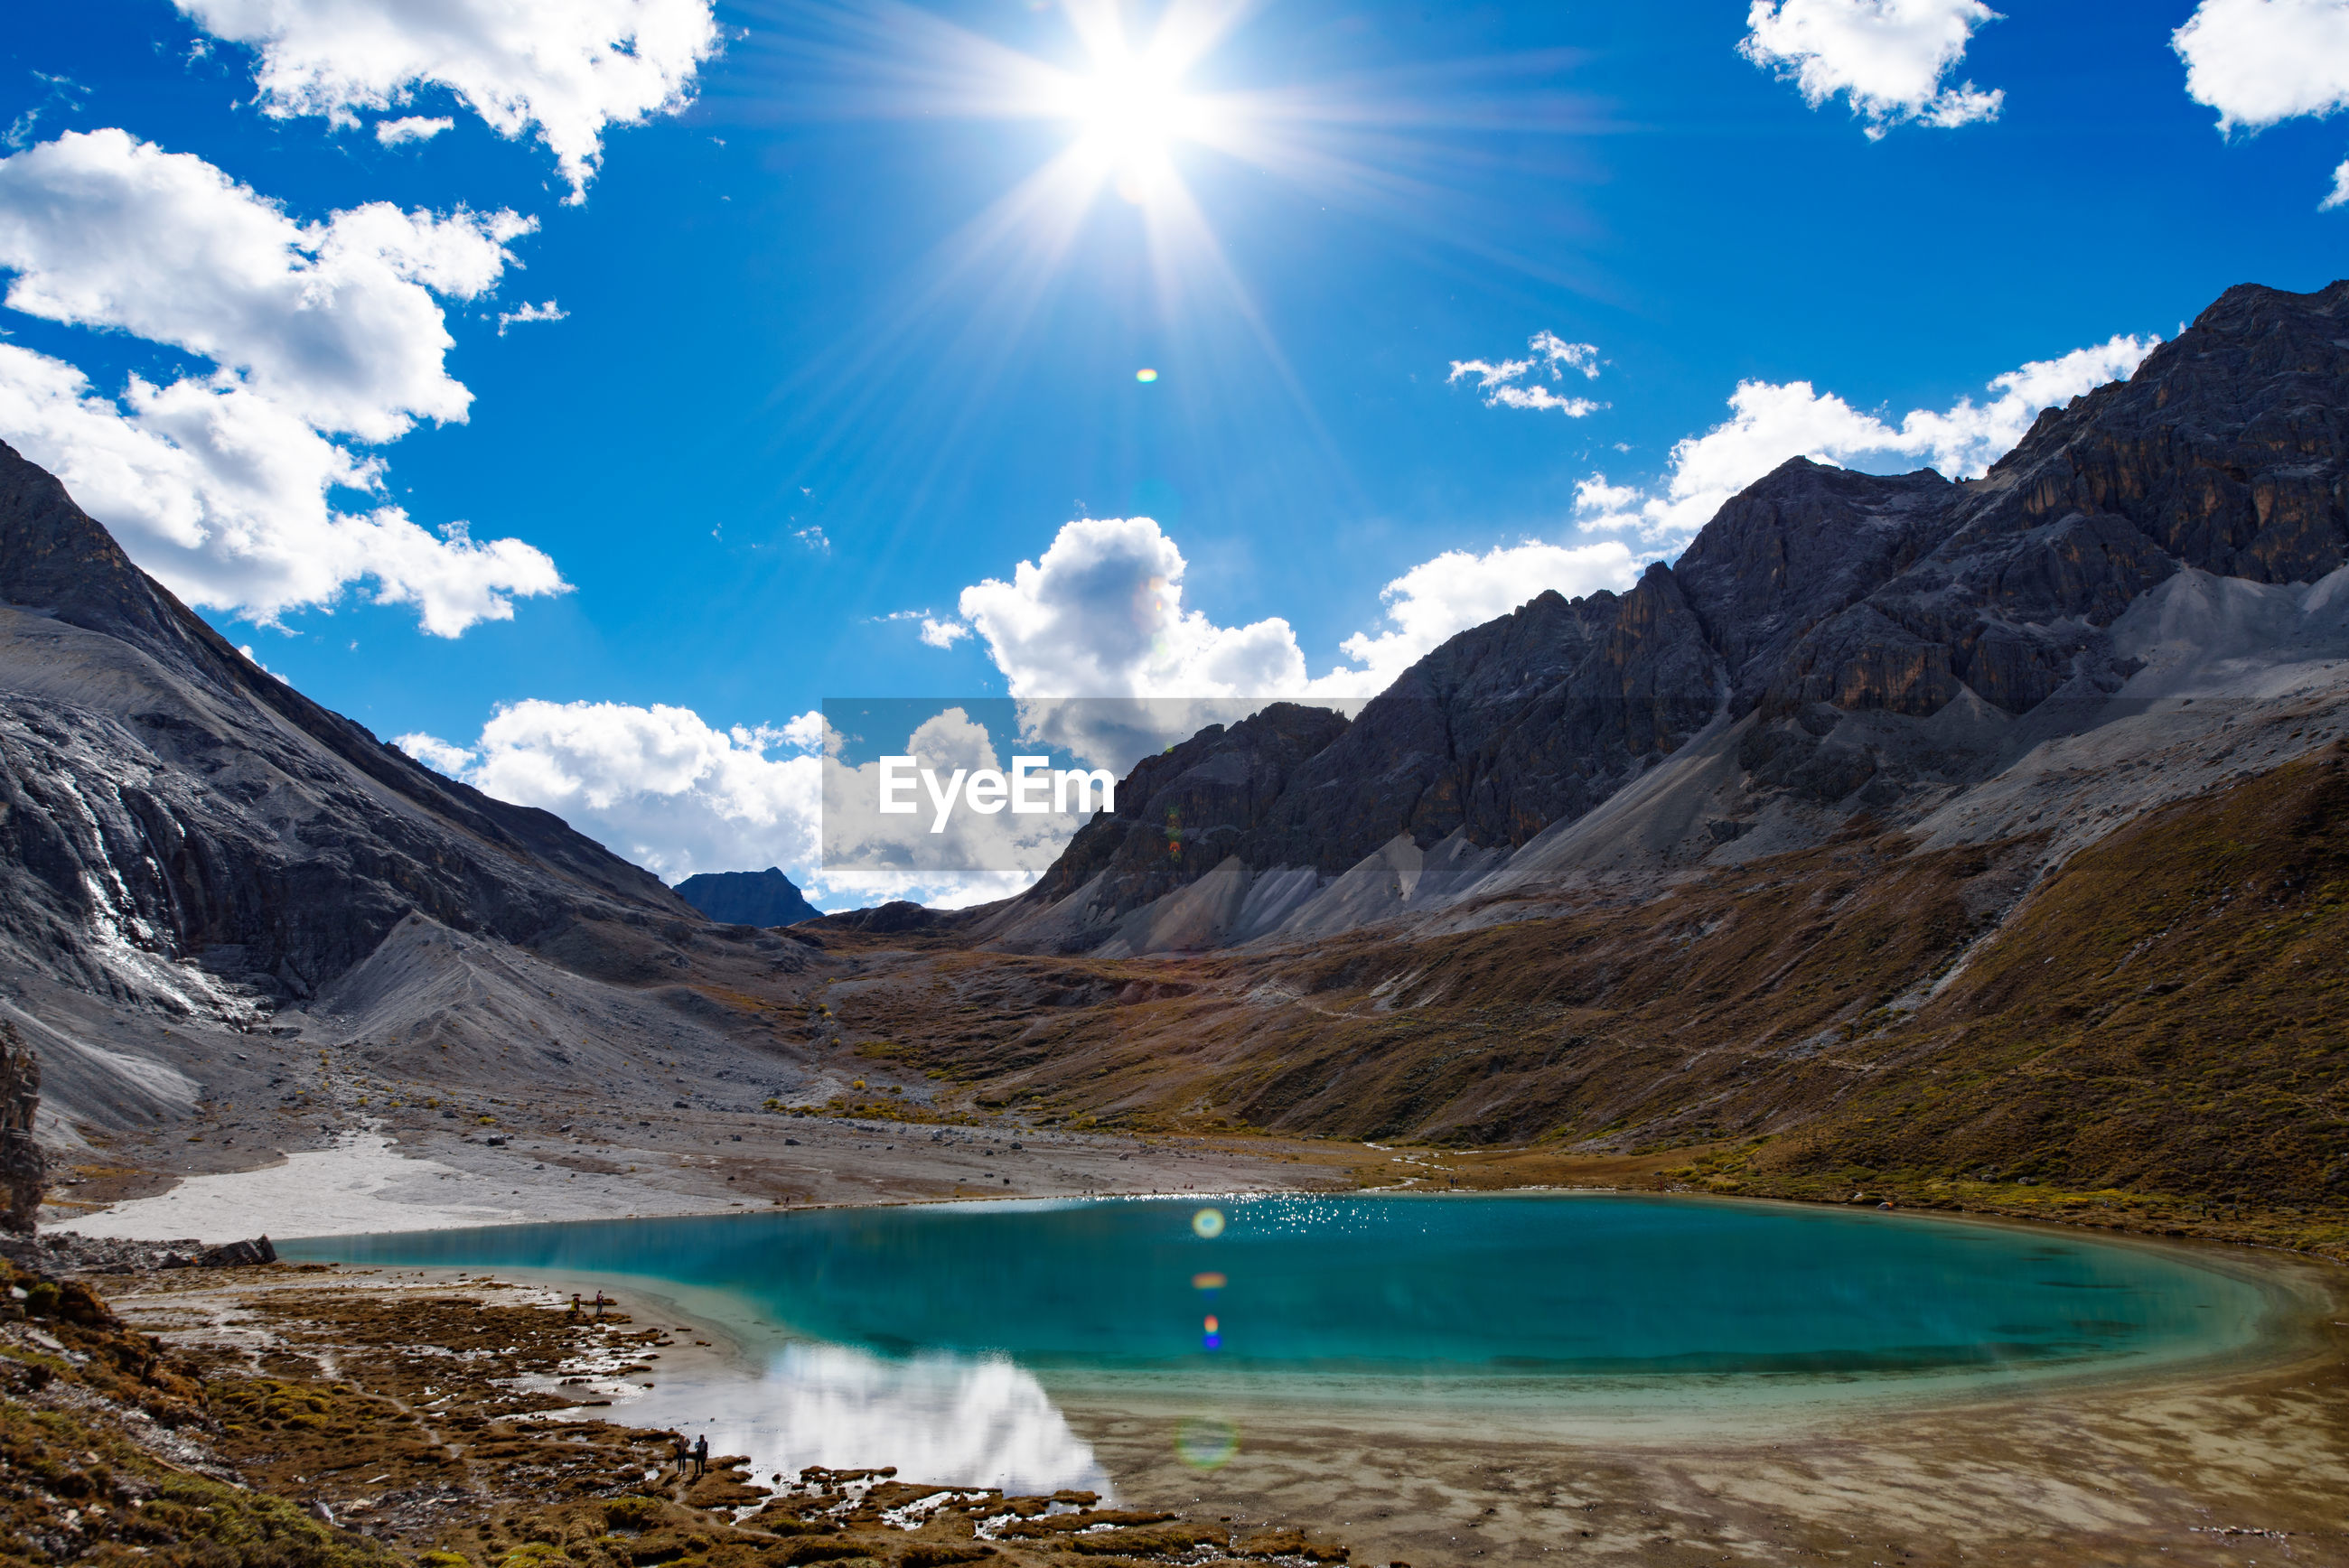 Scenic view of lagoon at mountains against blue sky on sunny day